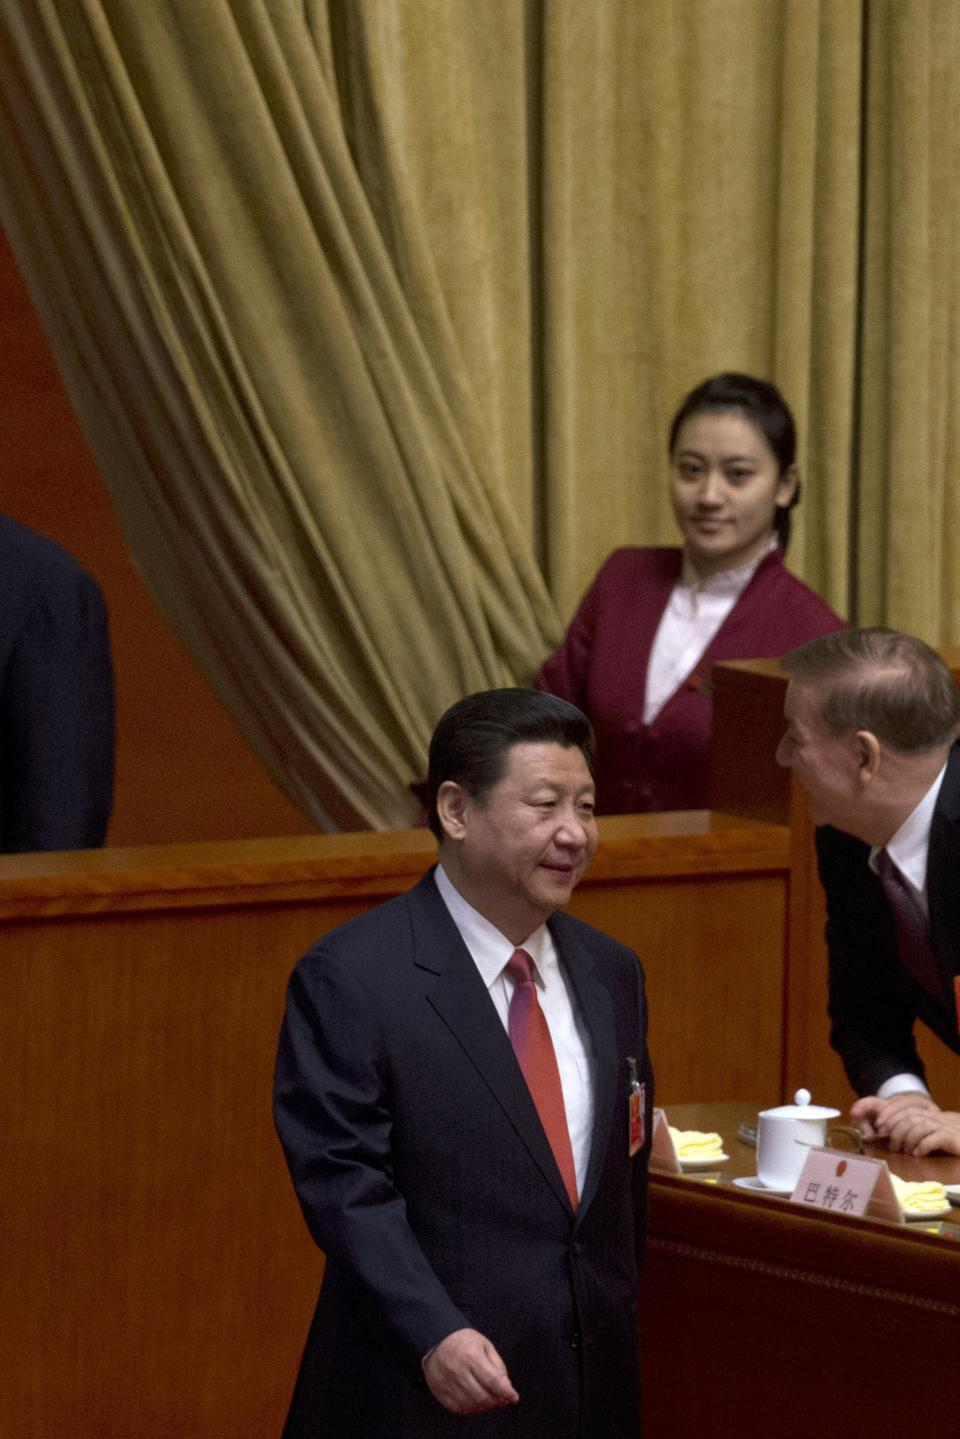 Chinese Communist Party chief and incoming-President Xi Jinping, arrives at a plenary session of the National People's Congress where delegates are expected to elect Xi officially as president at the Great Hall of the People in Beijing, China, Thursday, March 14, 2013. (AP Photo/Ng Han Guan)